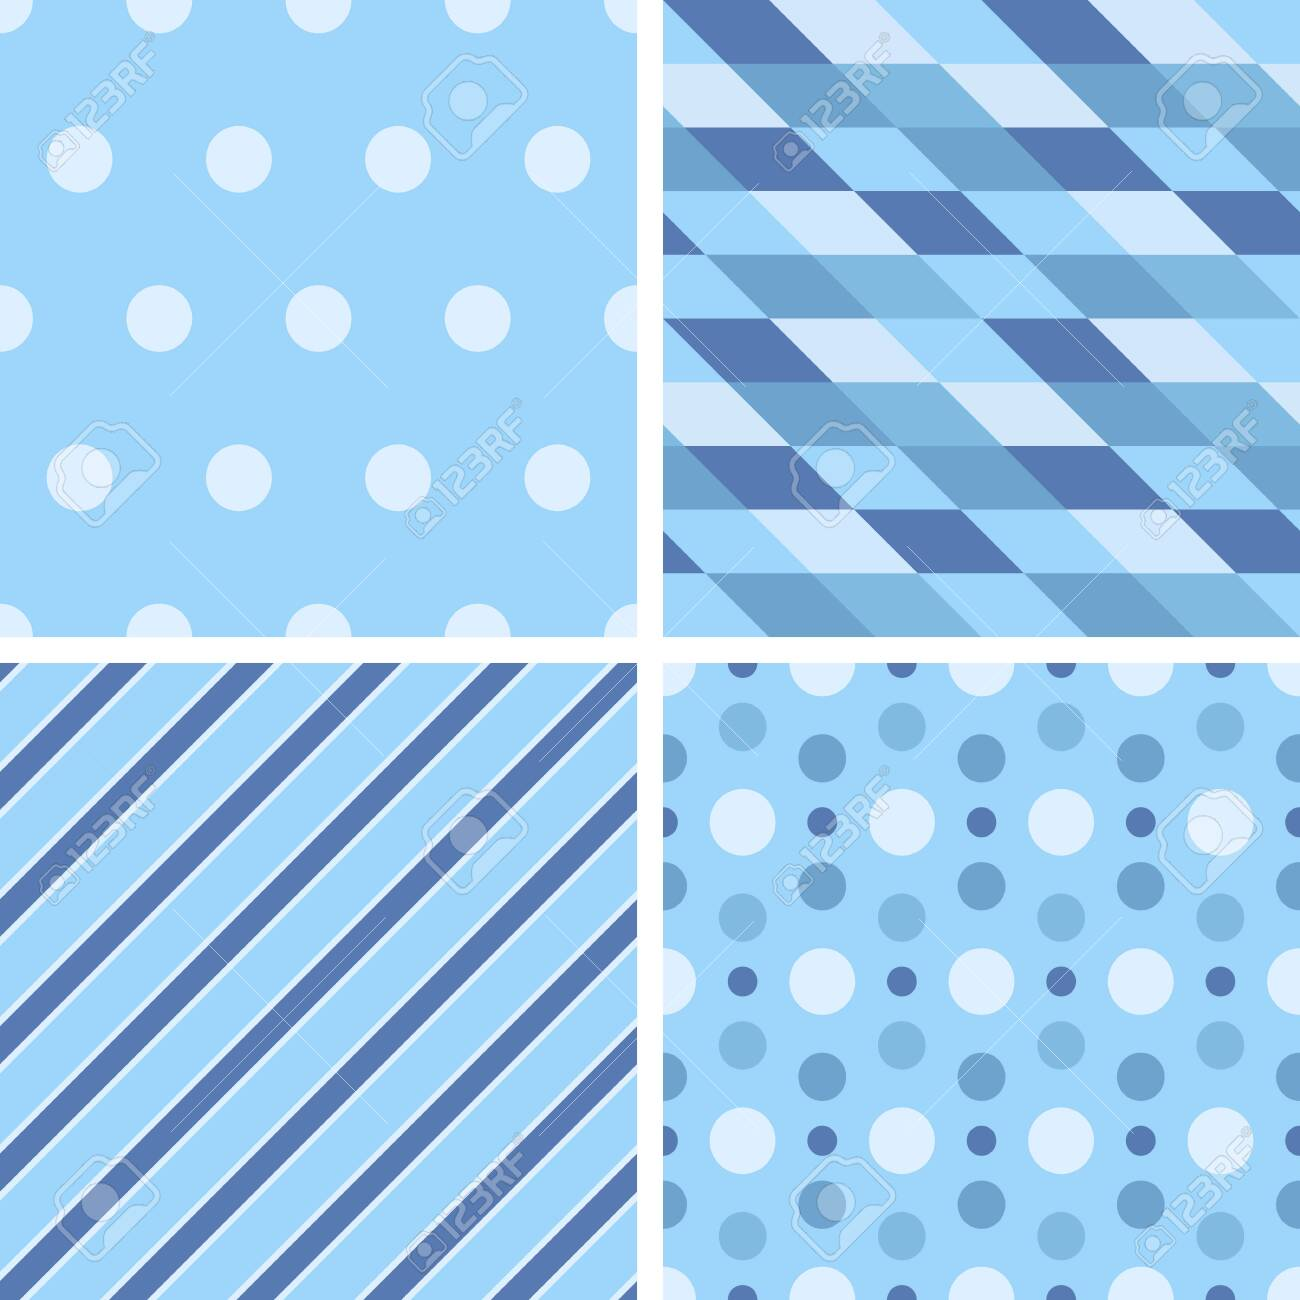 Vector Seamless Tiling Patterns Geometric Blue For Printing